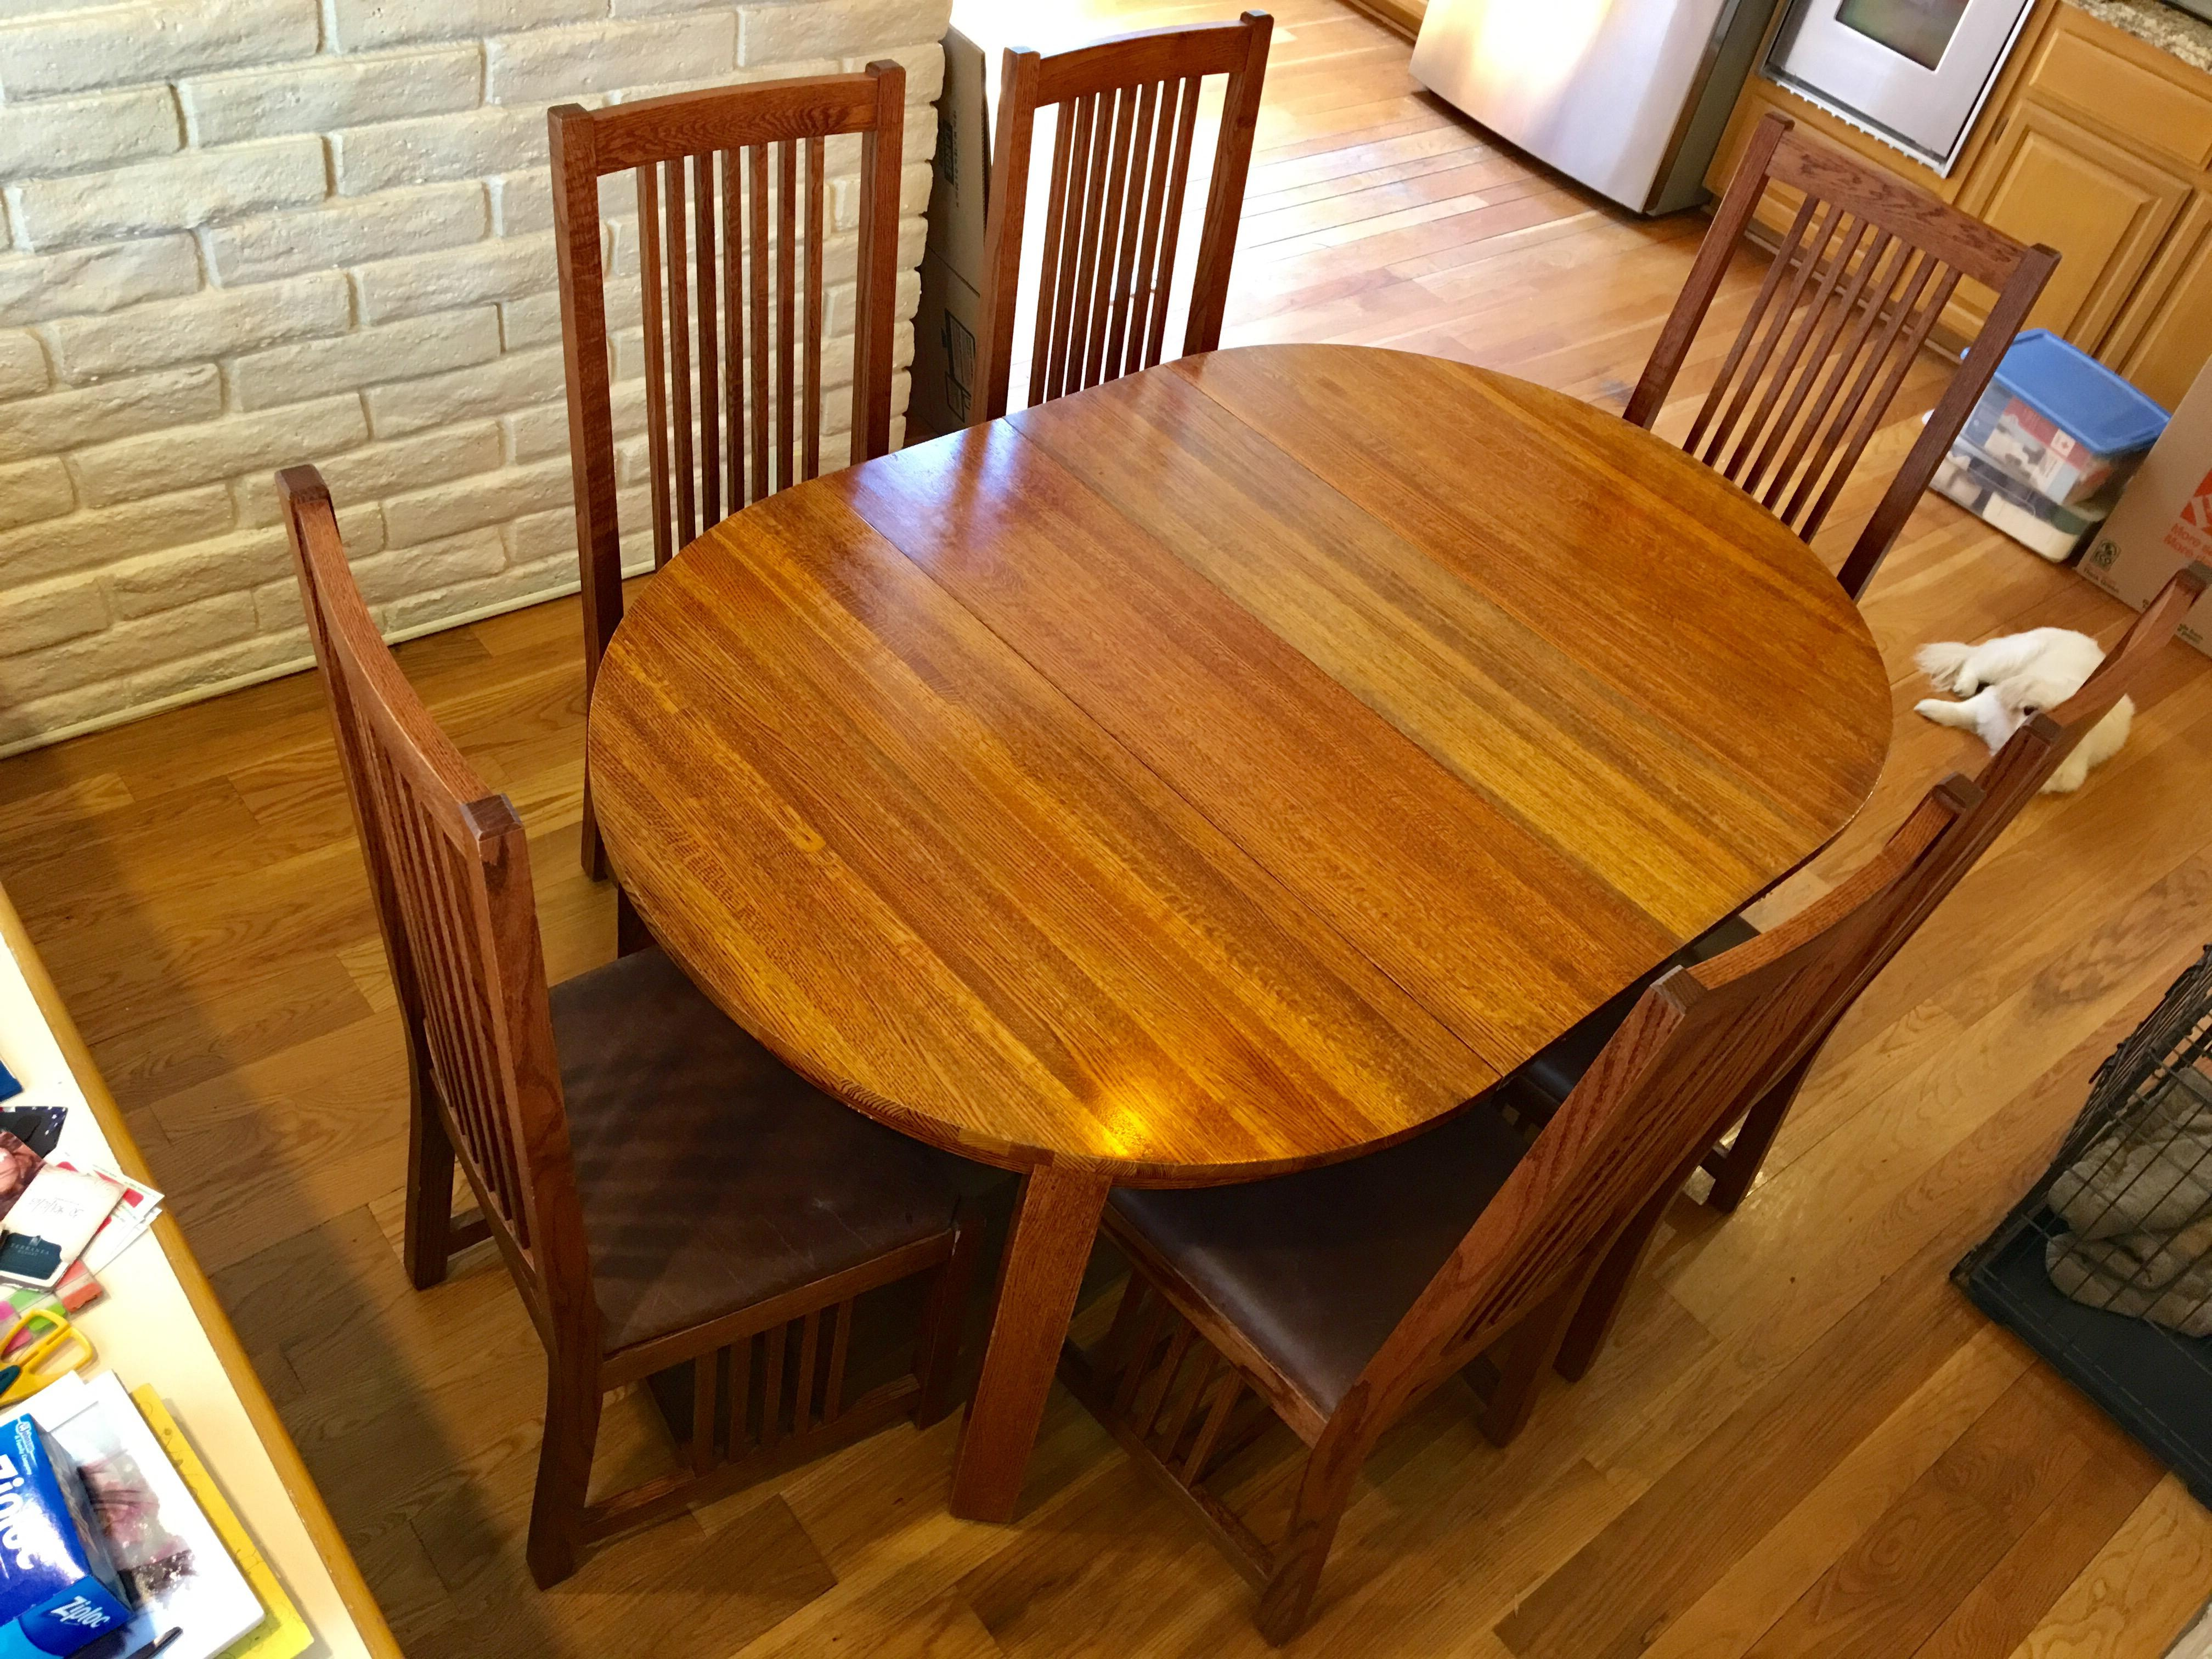 Genial Mission Restoration Hardware Mission Style Oak Dining Set   Set Of 7 For  Sale